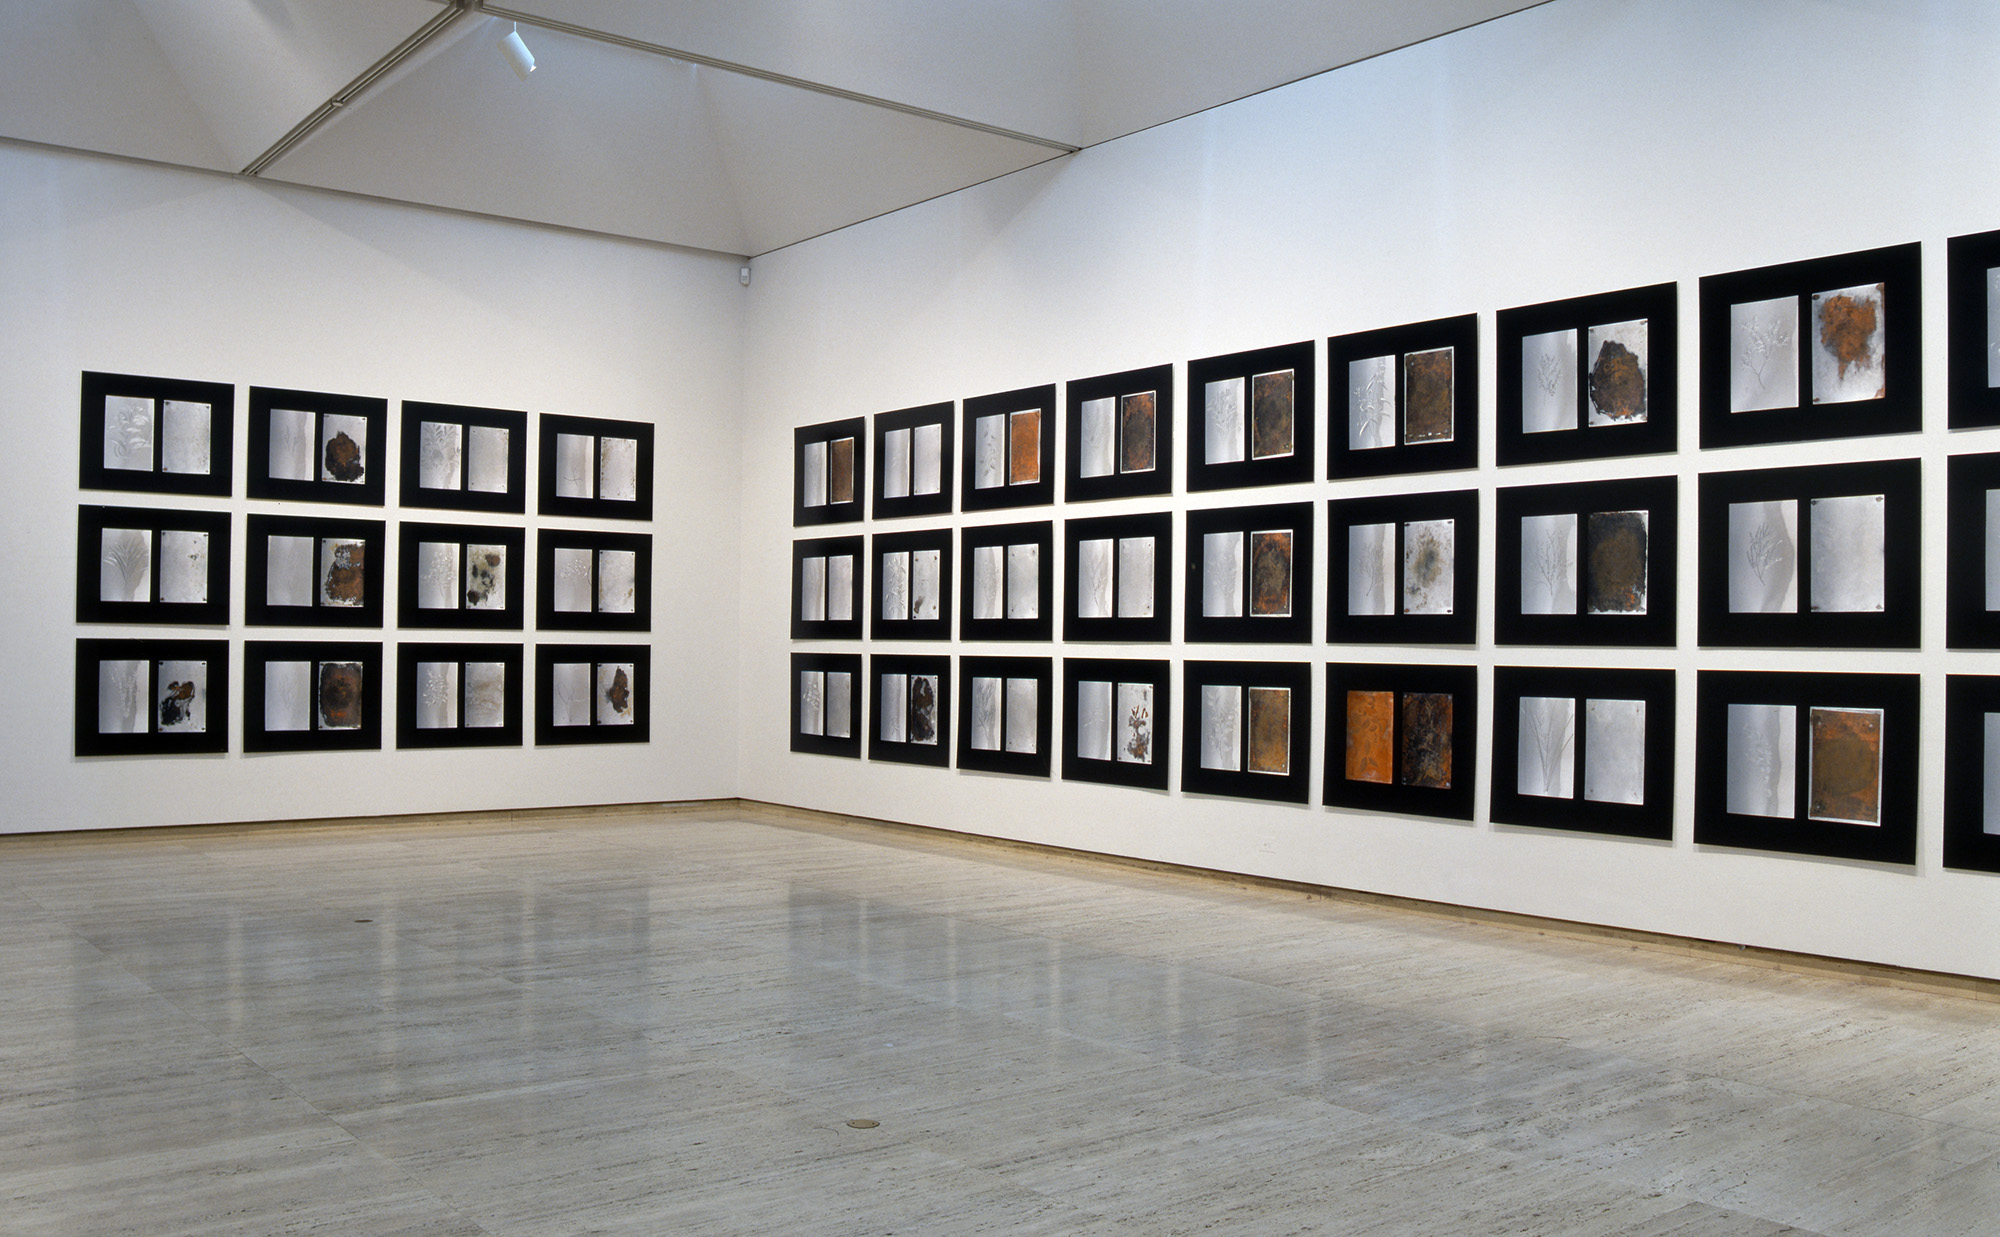 Debra Phillips, 52 sidelong glances (installation view Art Gallery of New South Wales), 2001